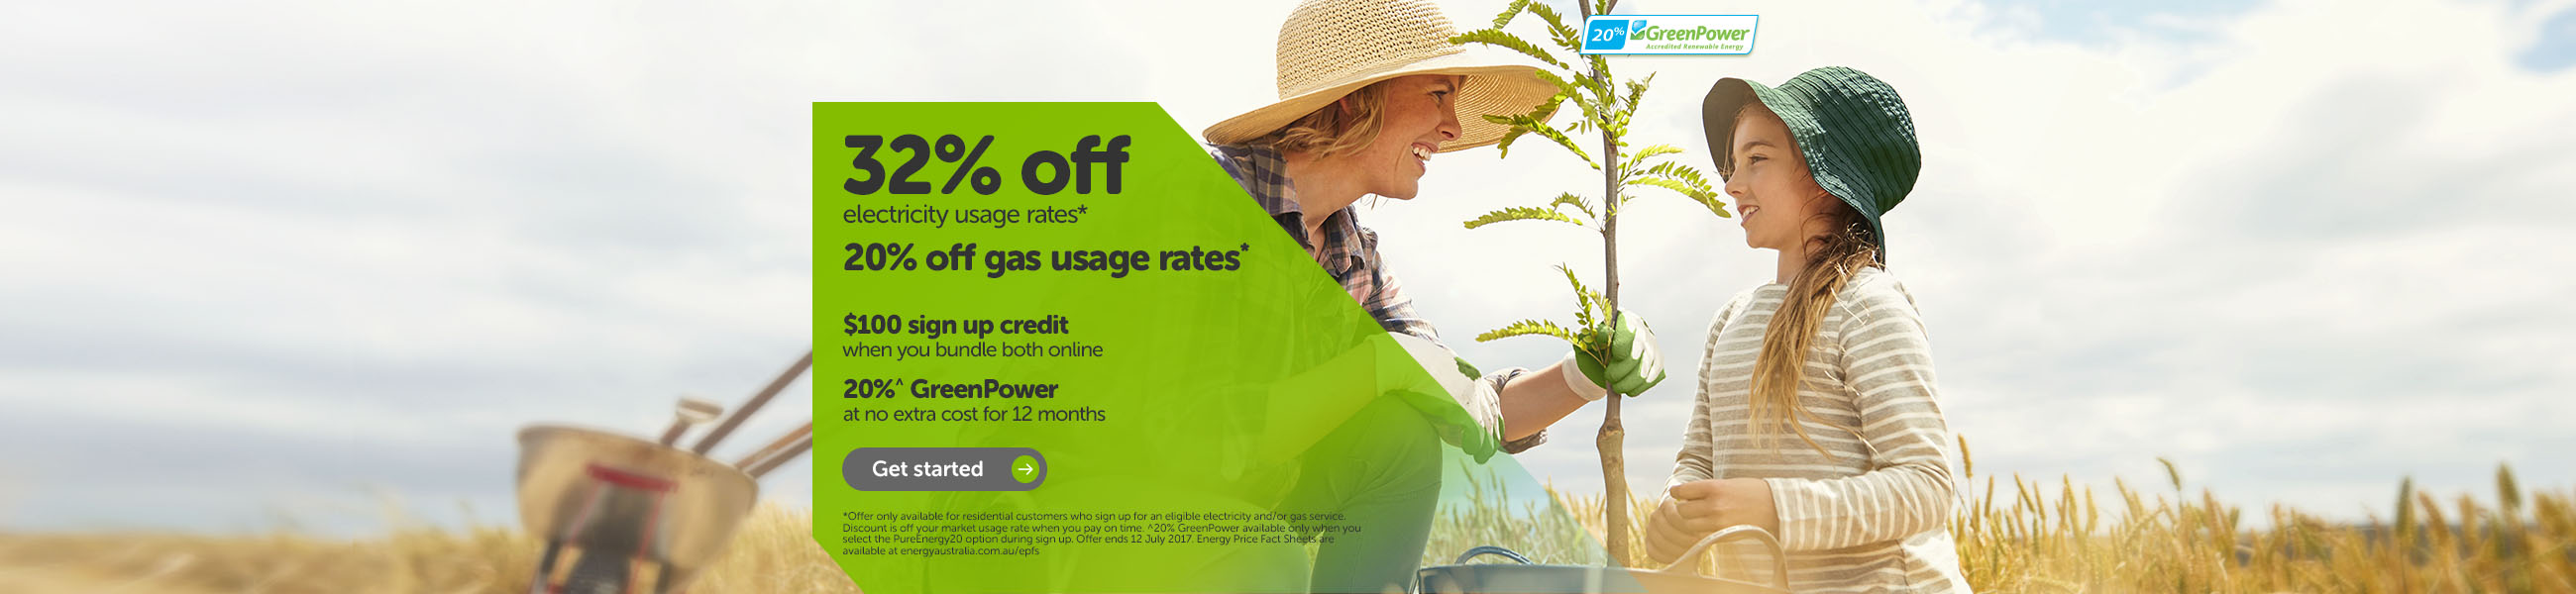 Vic Dual fuel offer